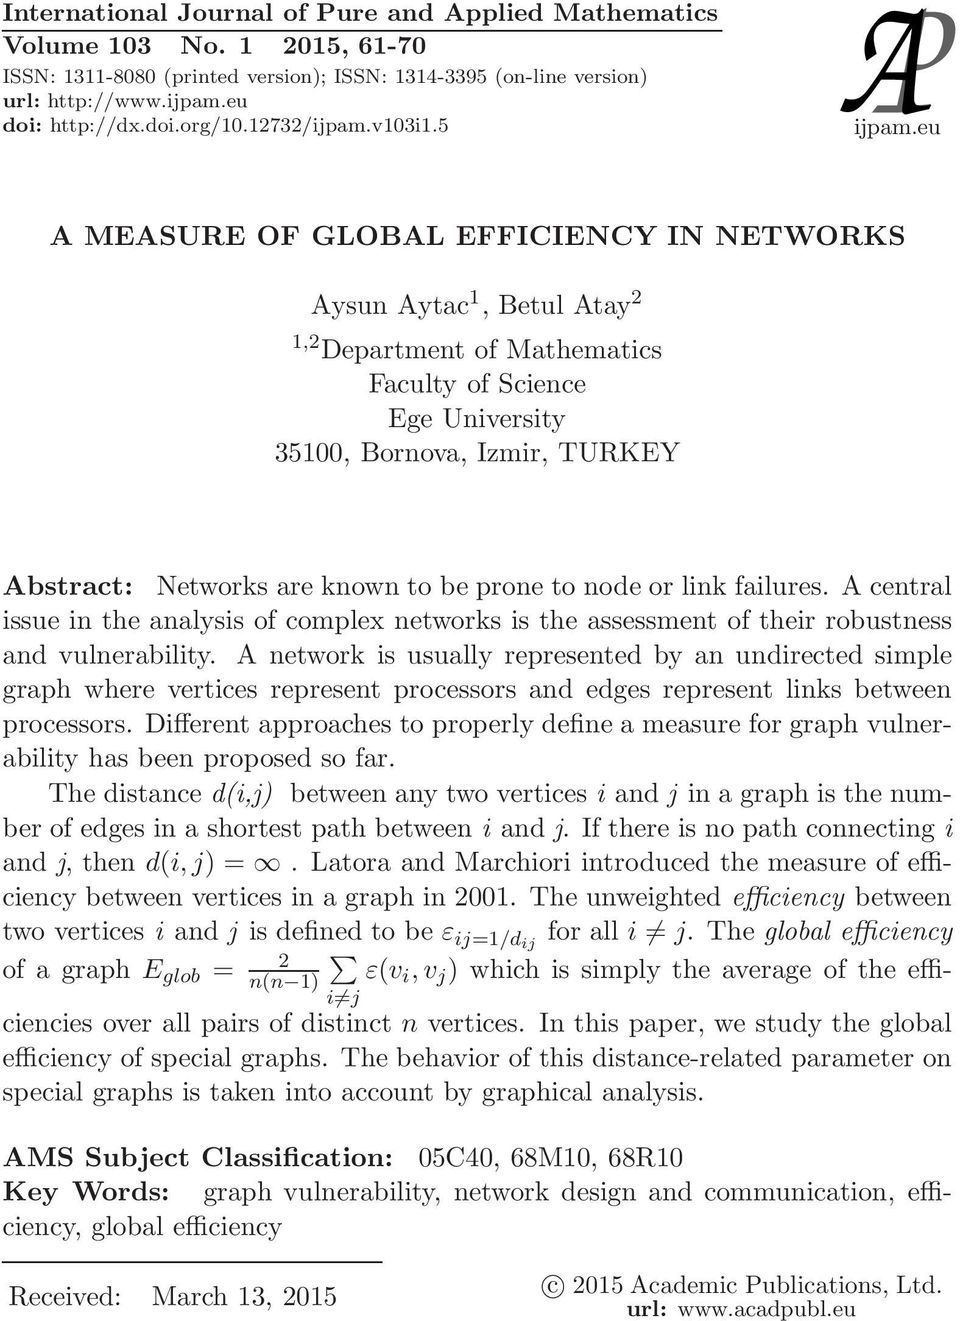 eu A MEASURE OF GLOBAL EFFICIENCY IN NETWORKS Aysun Aytac, Betul Atay, Department of Mathematics Faculty of Science Ege University 3500, Bornova, Izmir, TURKEY i j Abstract: Networks are known to be